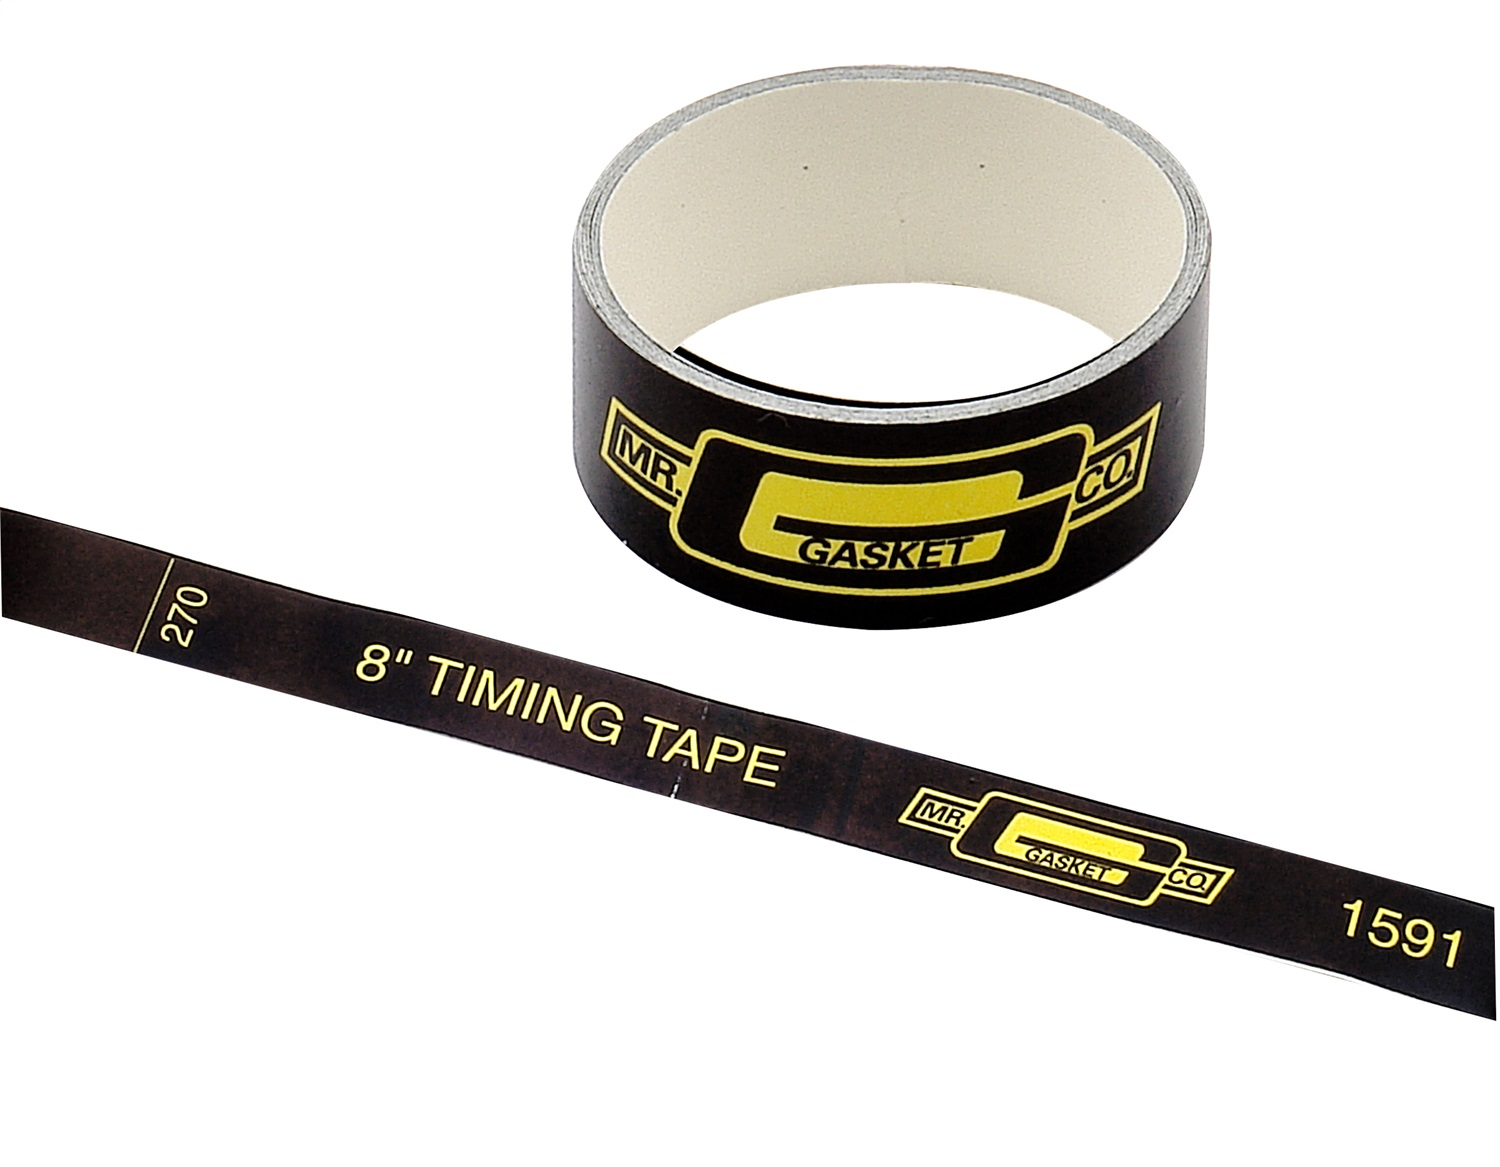 Mr. Gasket Engine Timing Tape (1591)